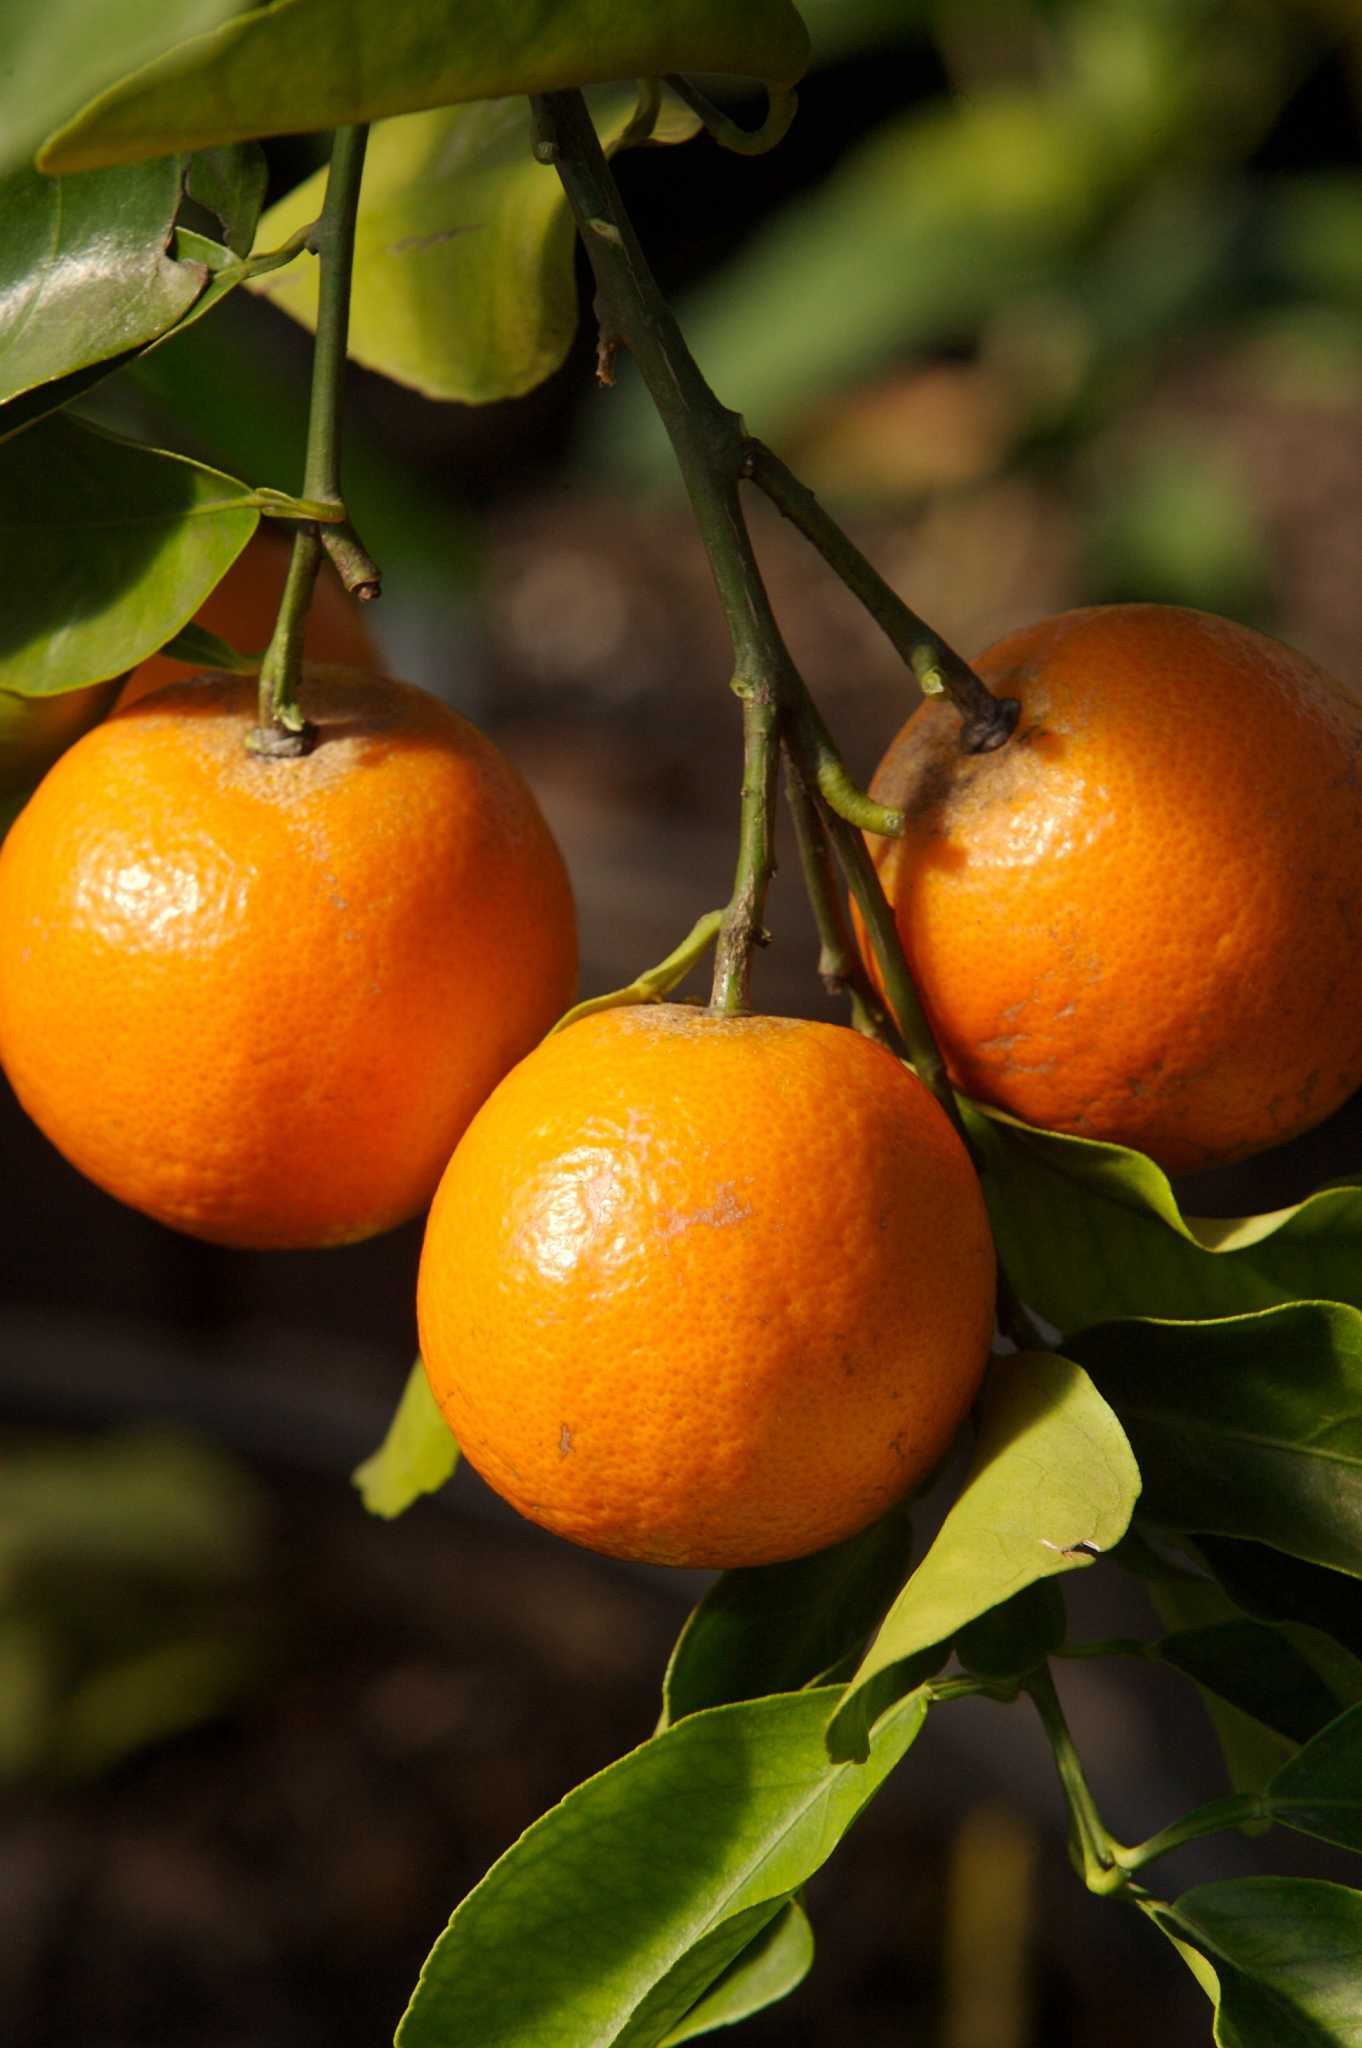 Citrus One Of The Easiest Most Productive Fruits In Home Orchard Houstonchronicle